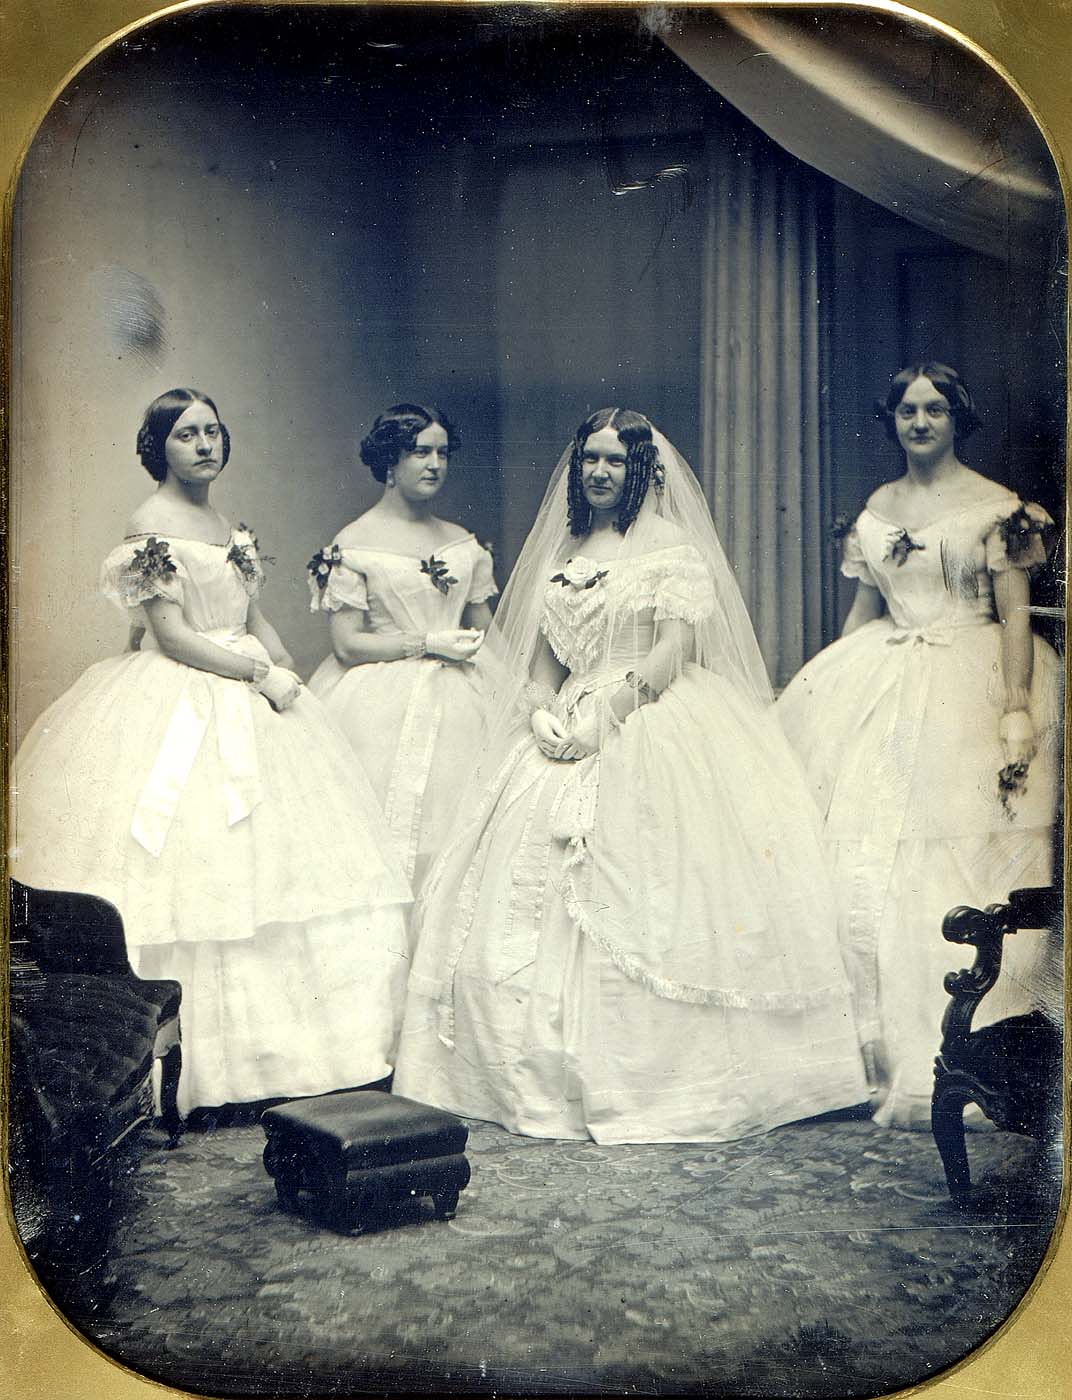 Portrait of a bride and her bridesmaids, 1850 ca.